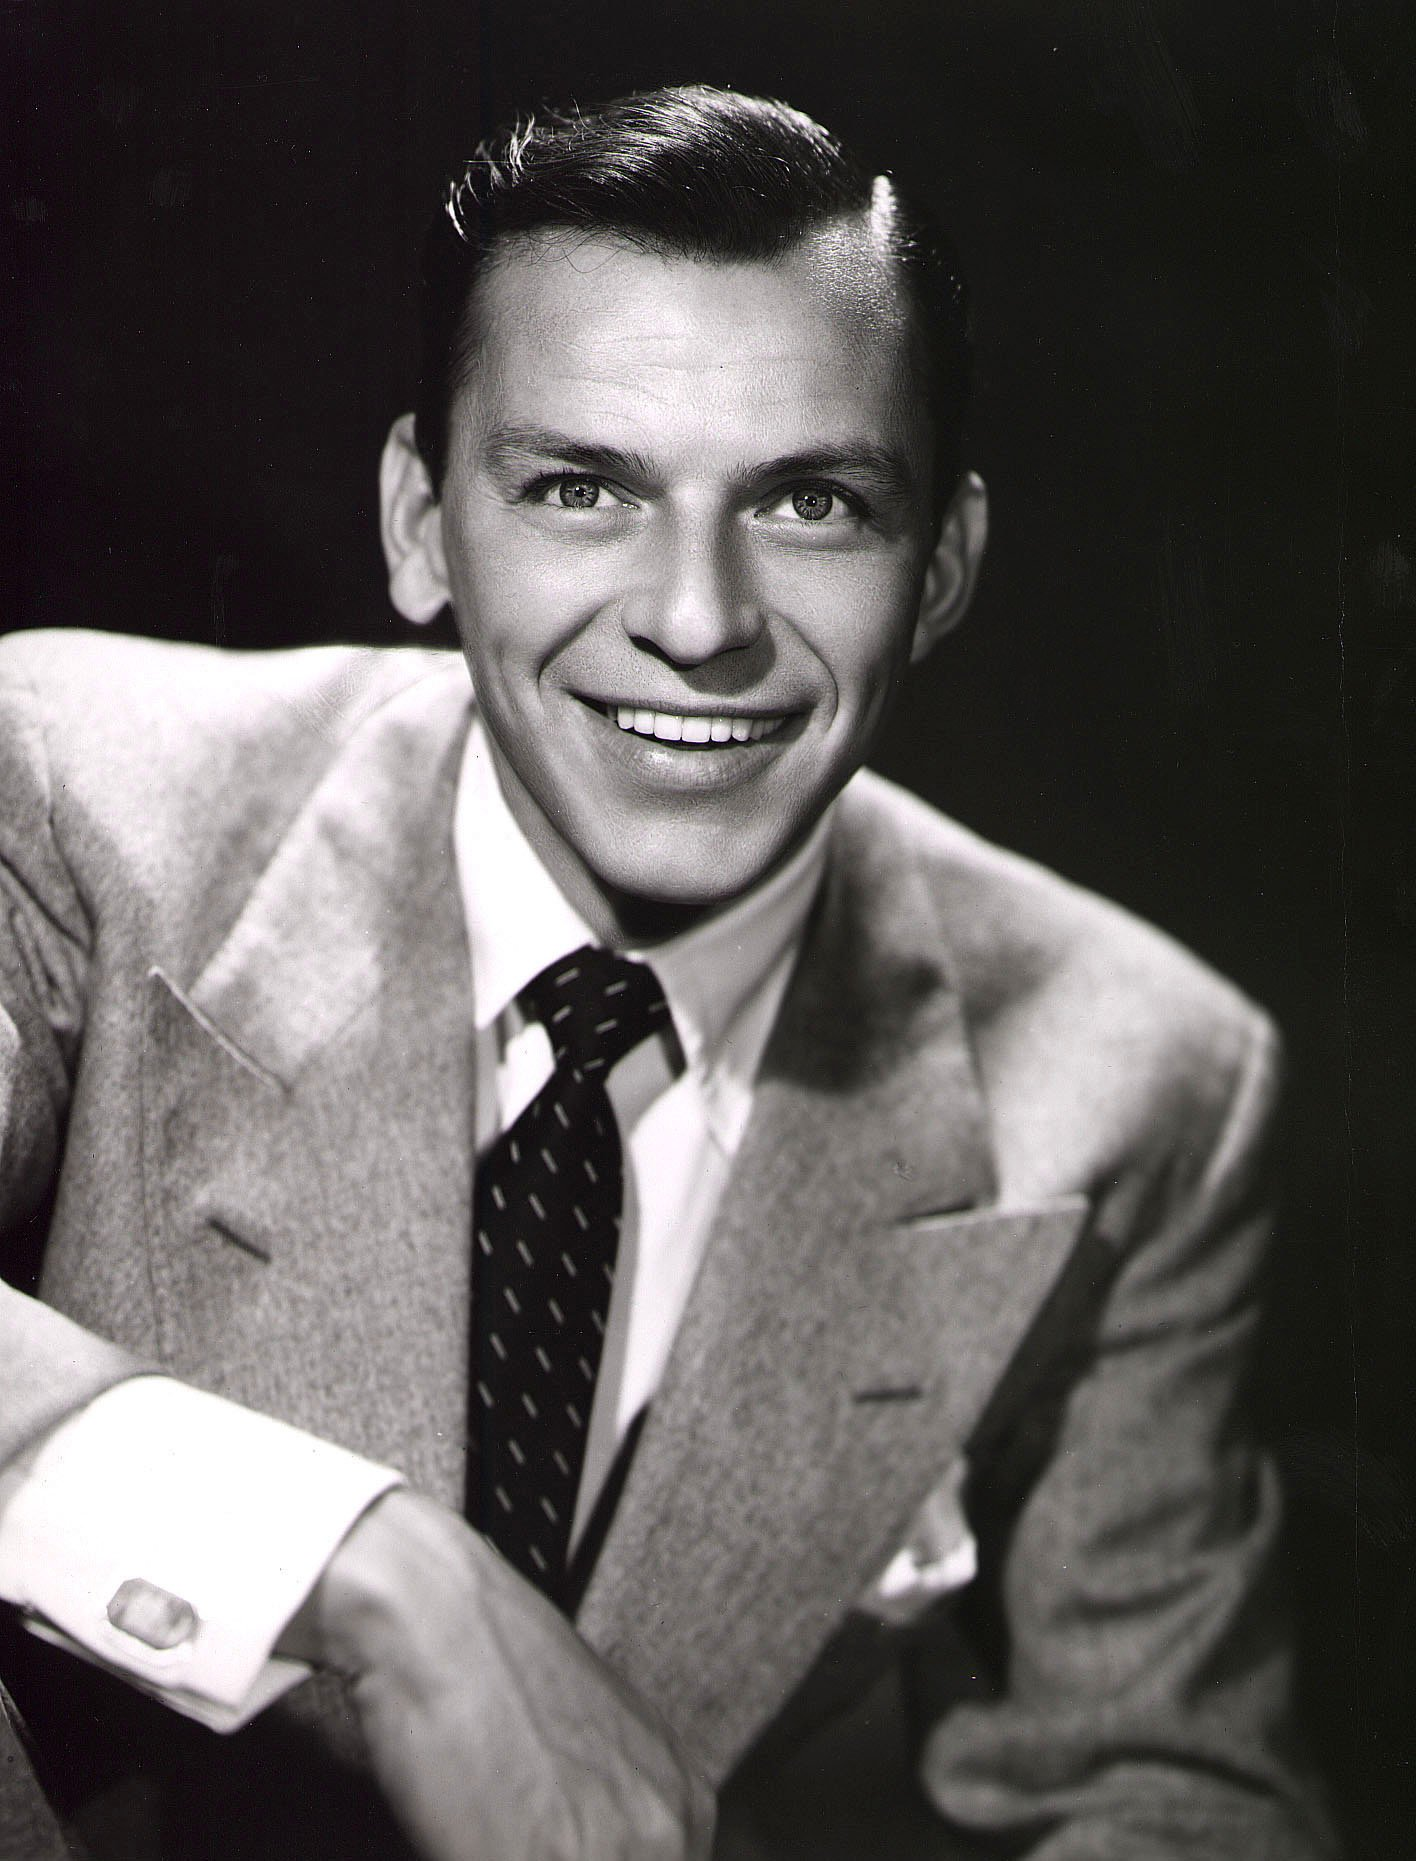 Studio portrait of Frank Sinatra during the 1950s | Photo: Getty Images